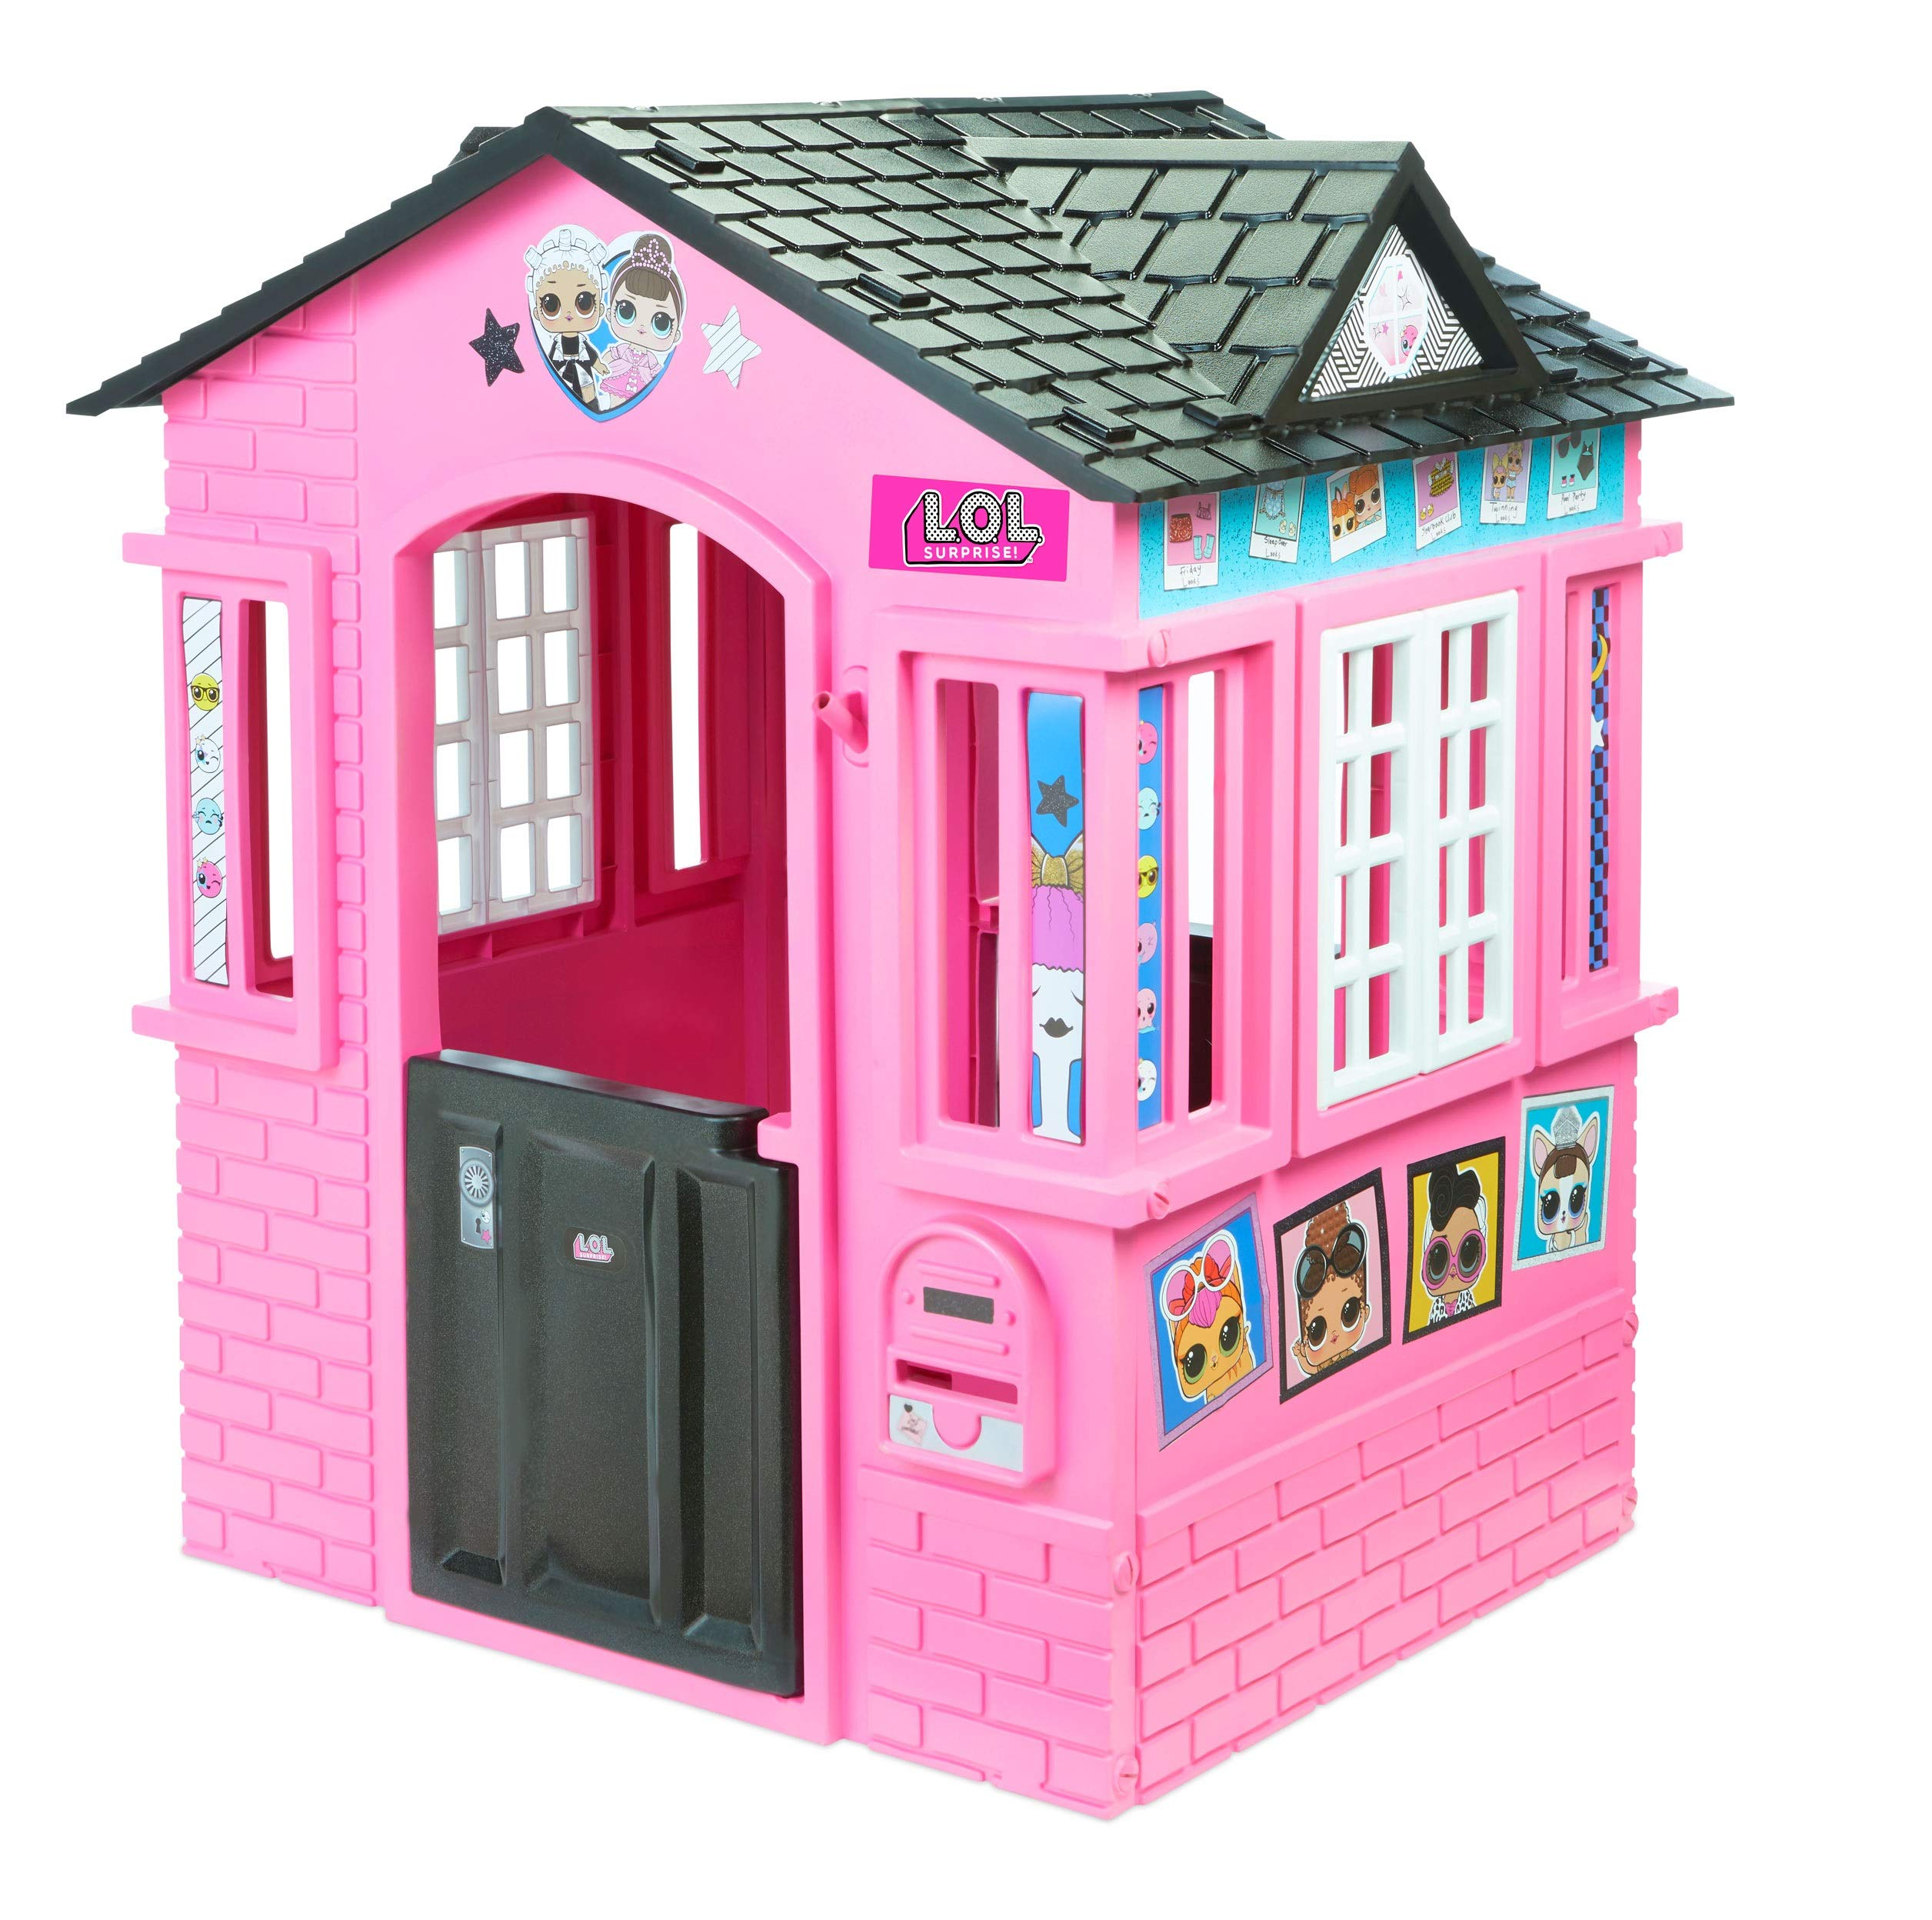 L.O.L. Surprise! Indoor & Outdoor Cottage Playhouse with Glitter by L.O.L. Surprise!